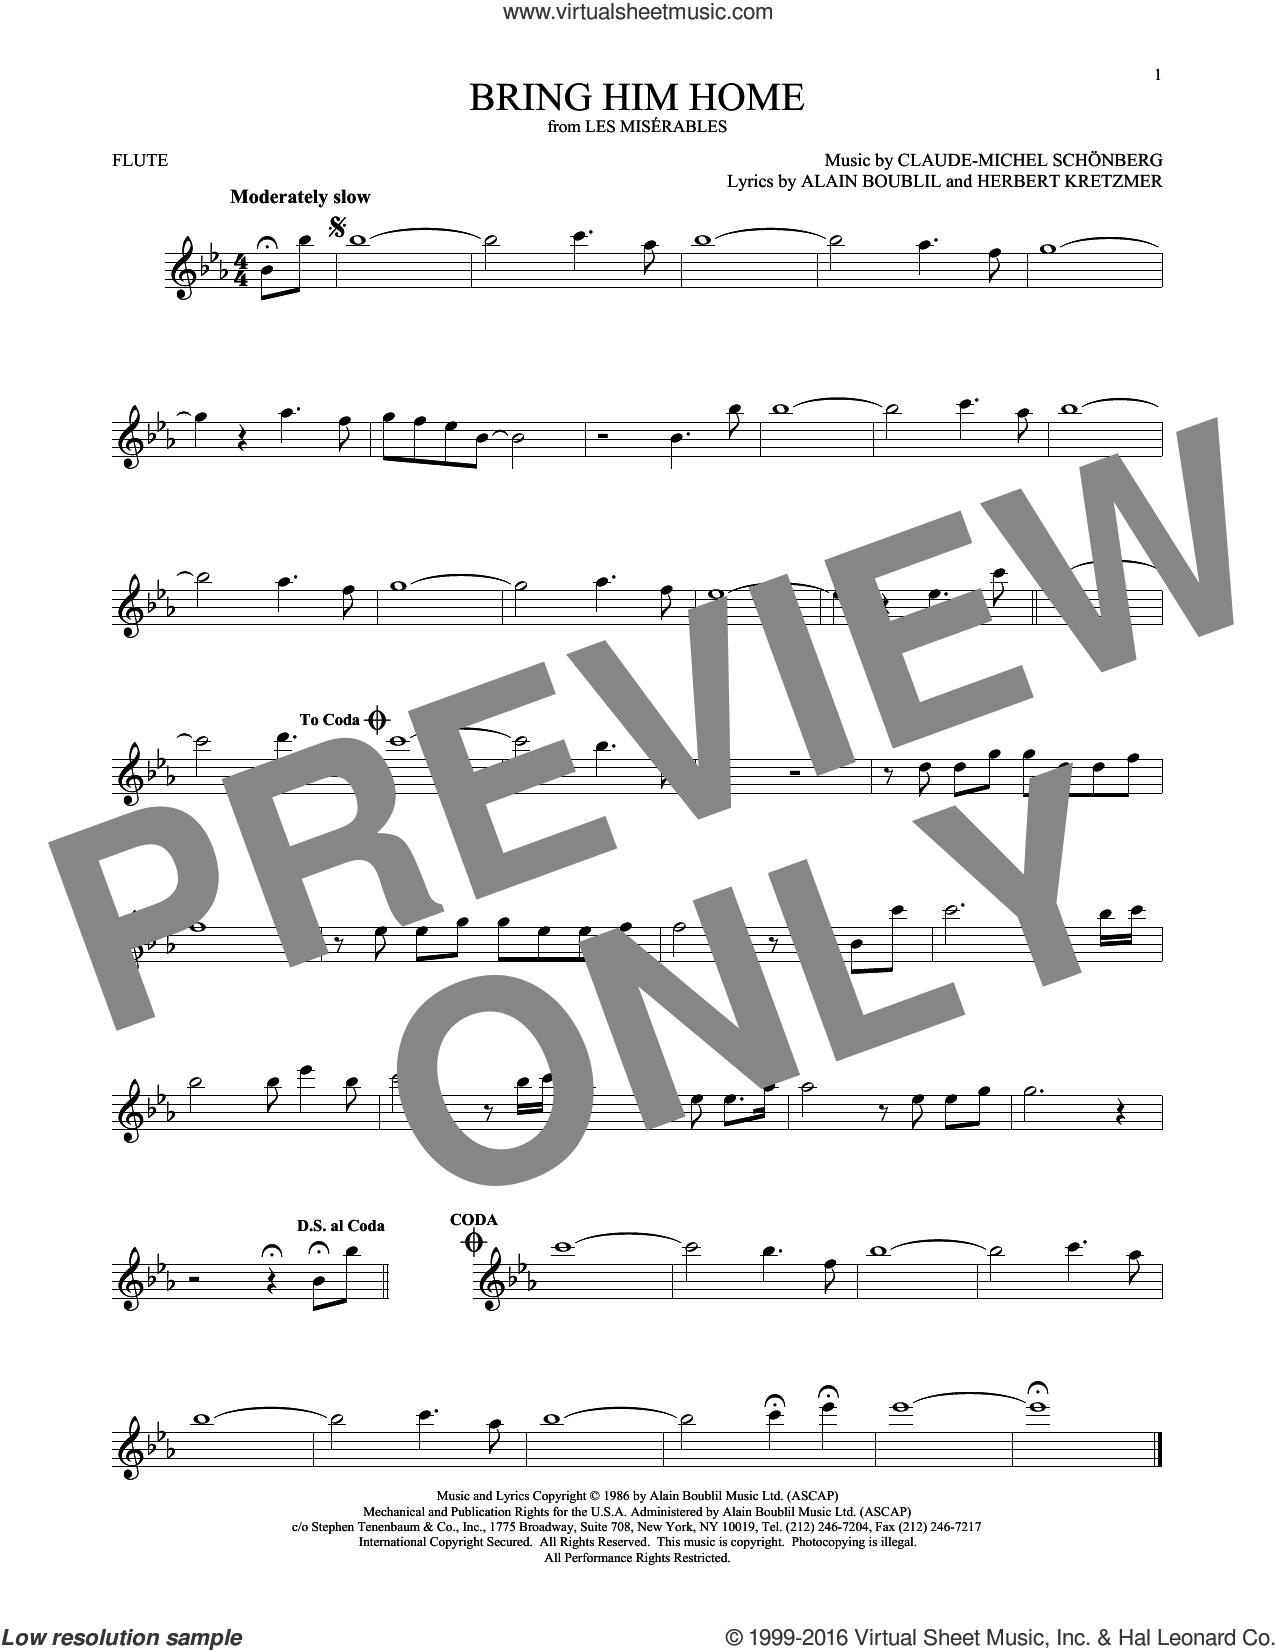 Bring Him Home sheet music for flute solo by Herbert Kretzmer, Alain Boublil and Claude-Michel Schonberg. Score Image Preview.